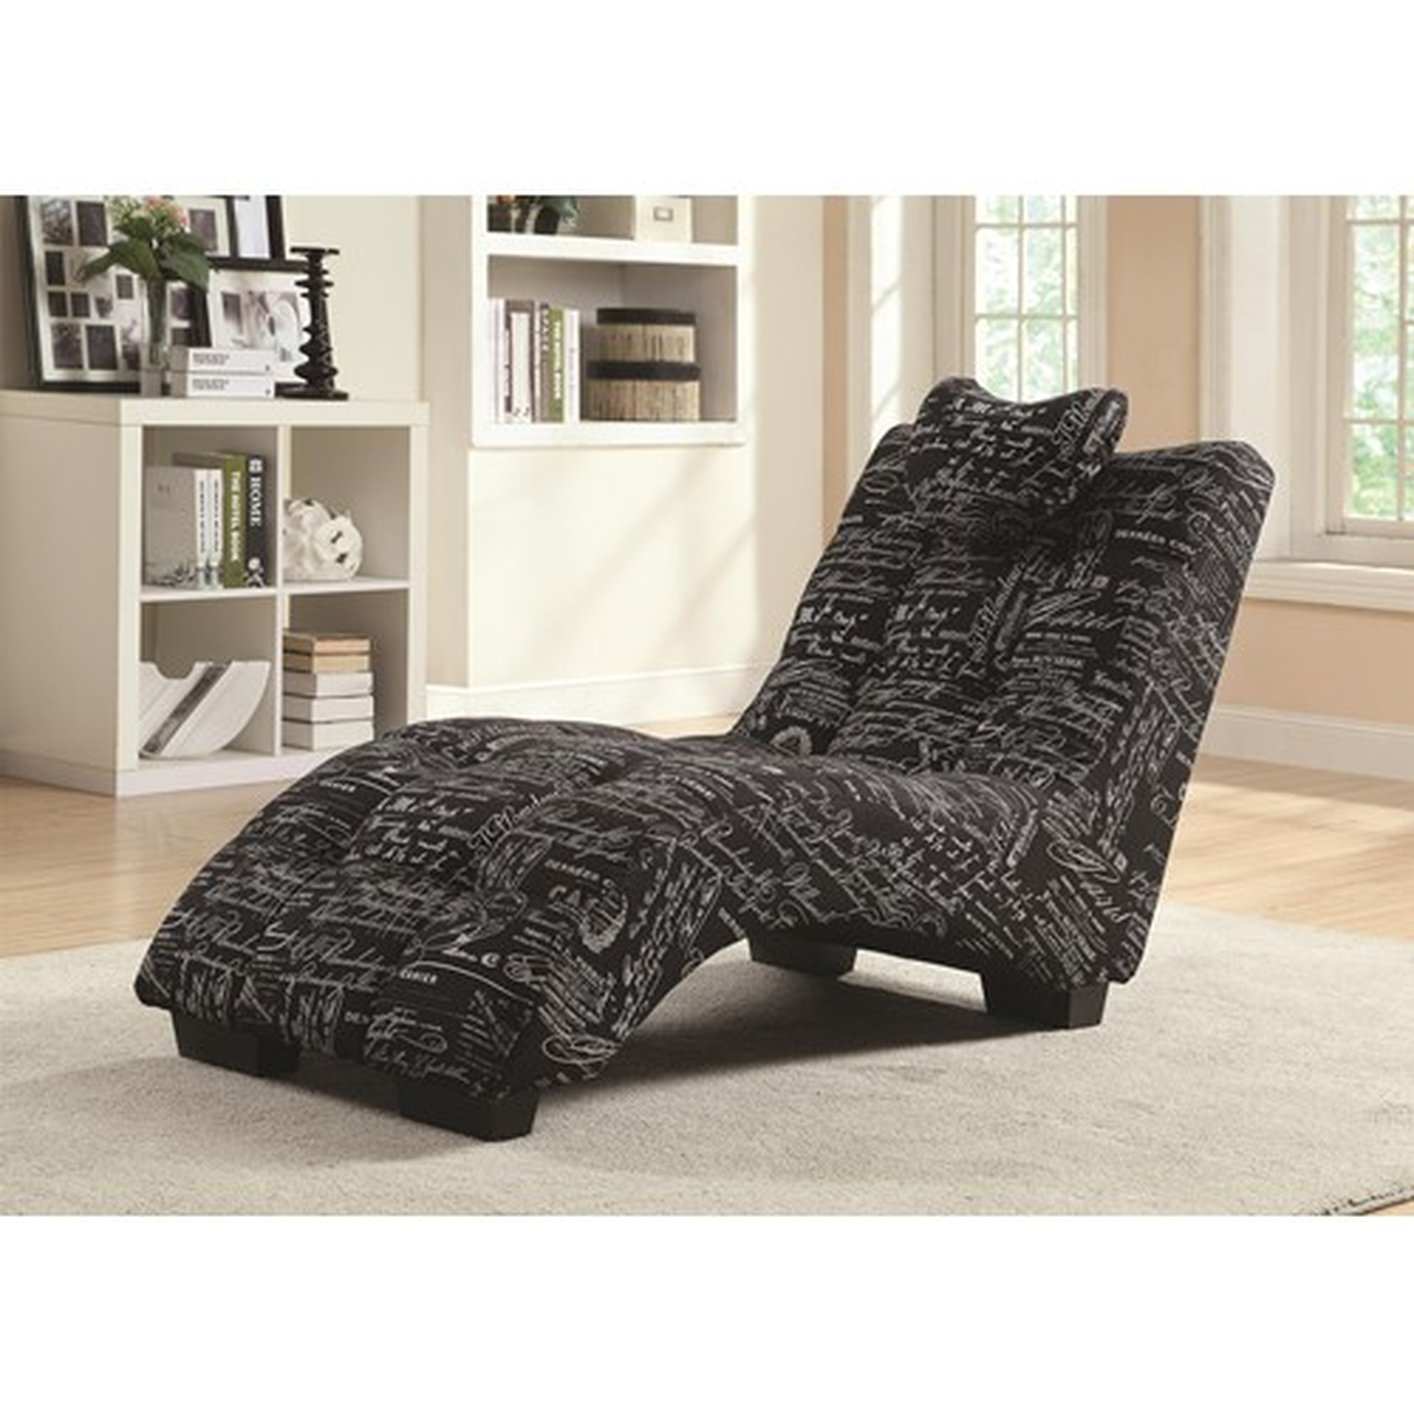 black fabric chaise lounge steal a sofa furniture outlet los angeles ca. Black Bedroom Furniture Sets. Home Design Ideas